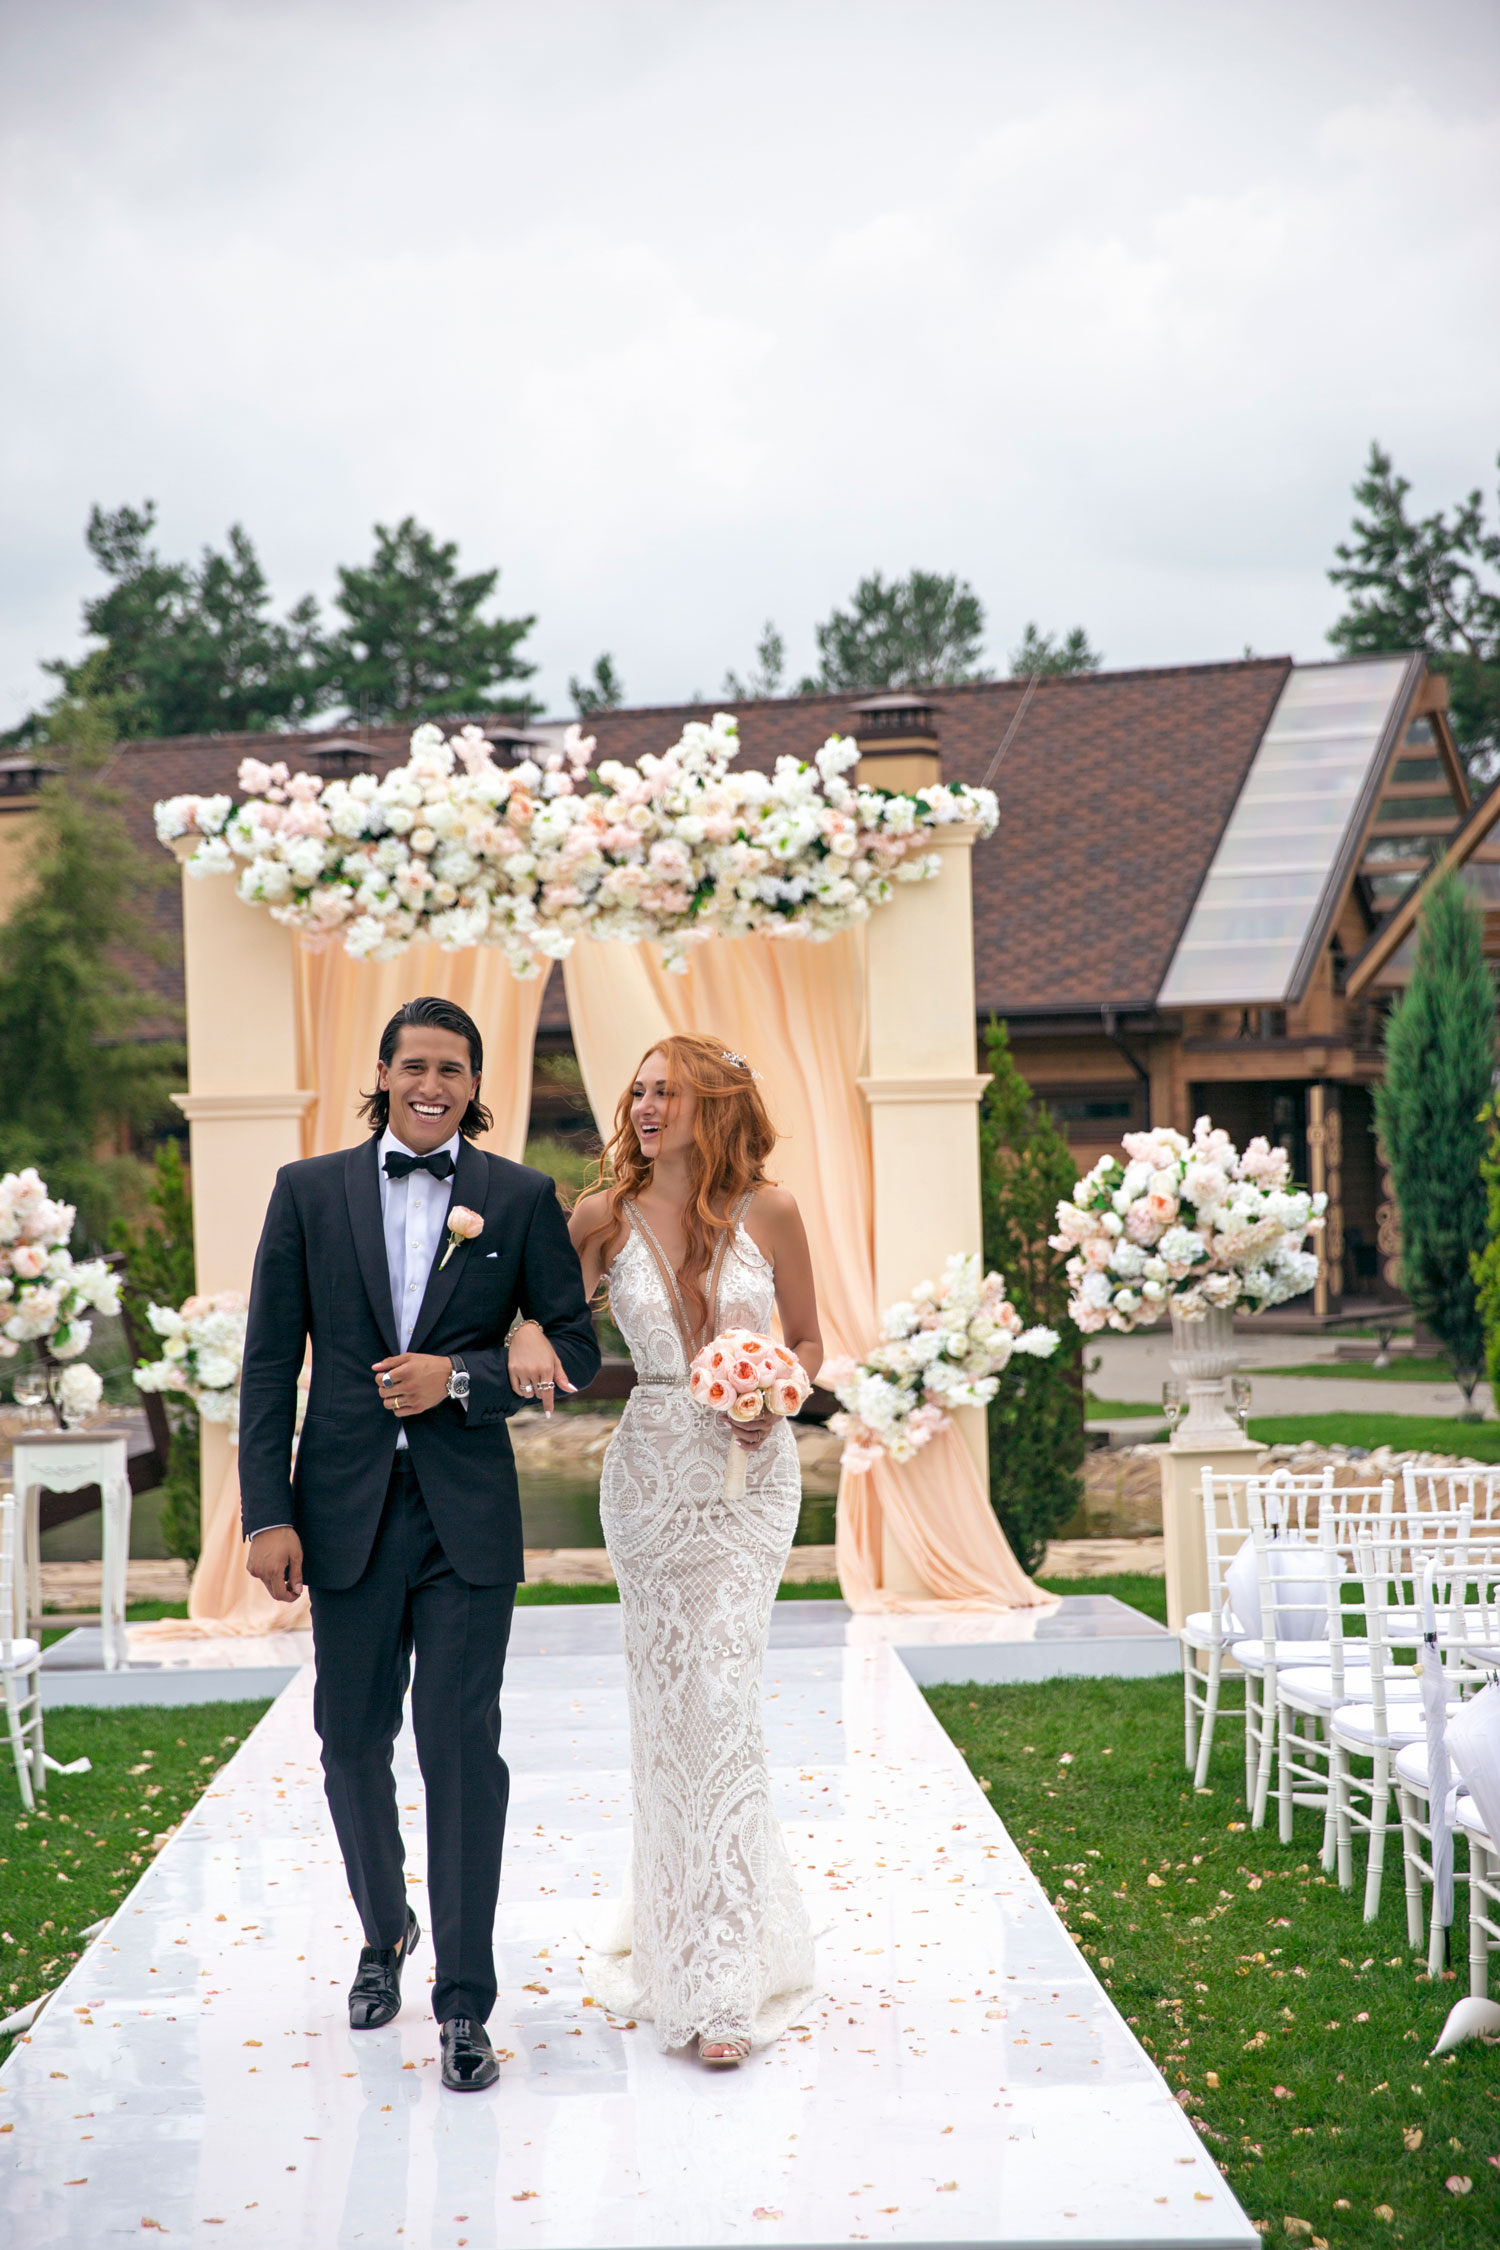 Real bride in Galia Lahav wedding dress plunging neckline form fitting design